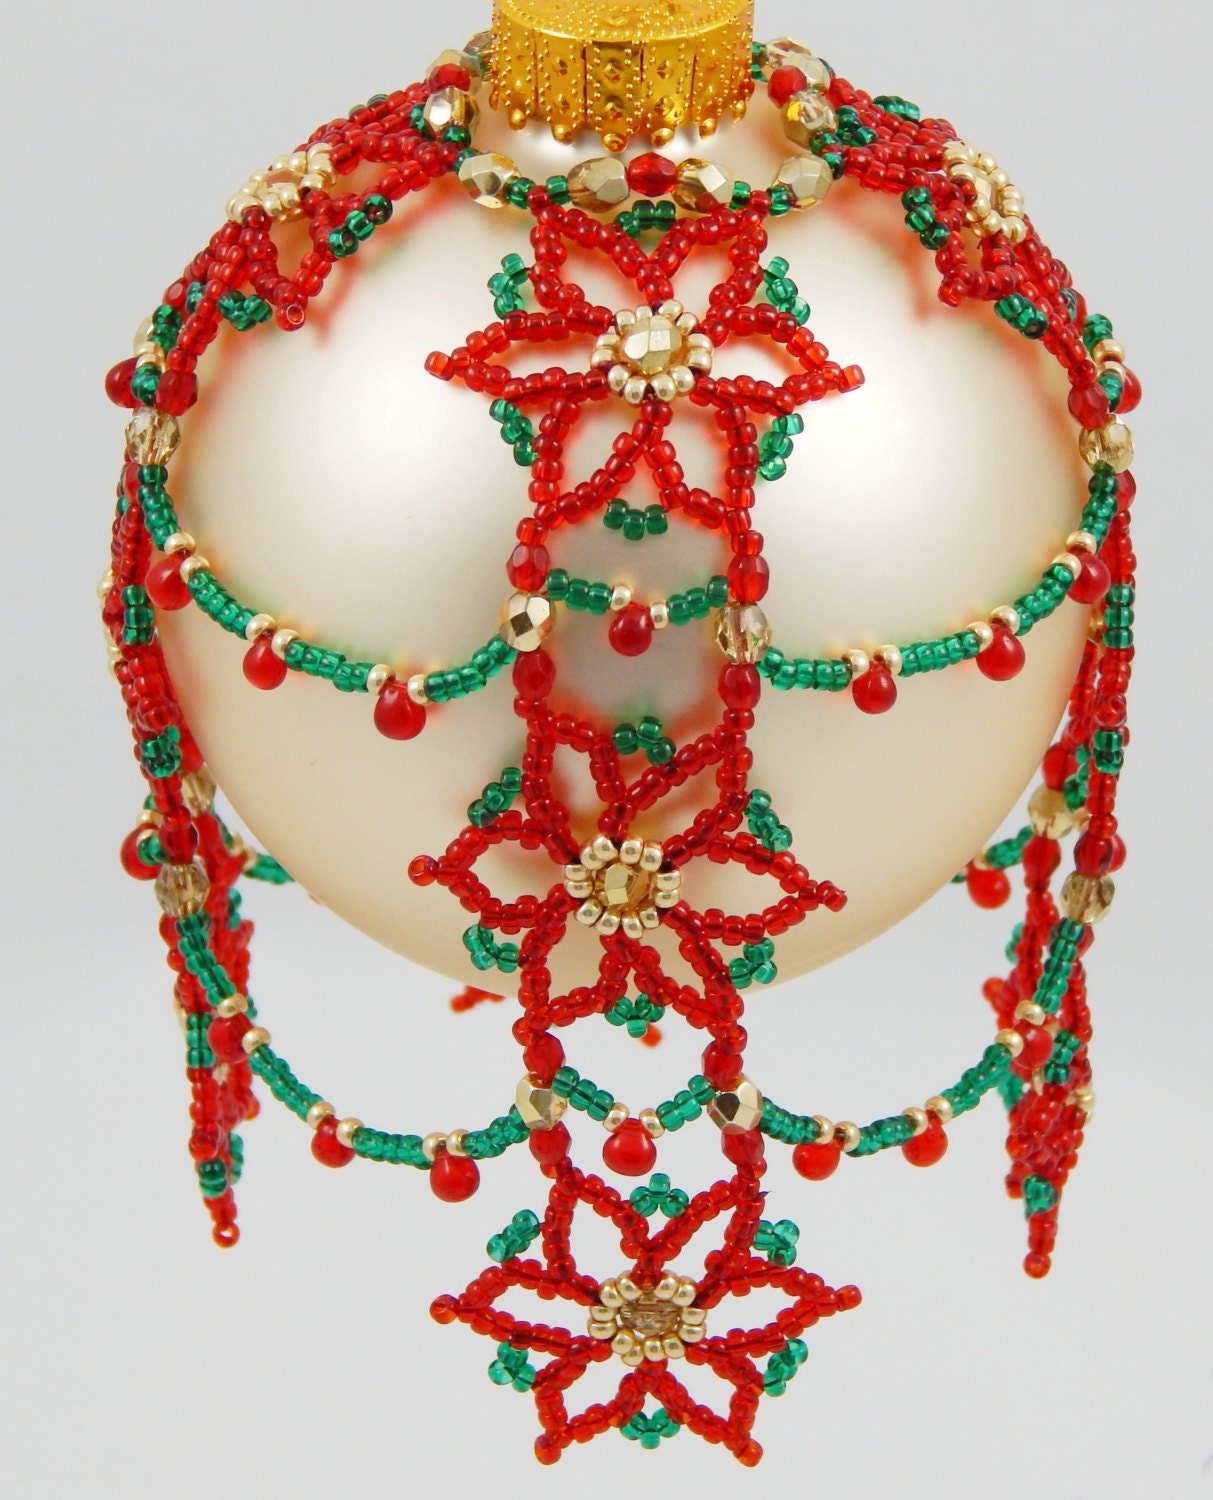 cascading poinsettia s beaded ornament cover pattern